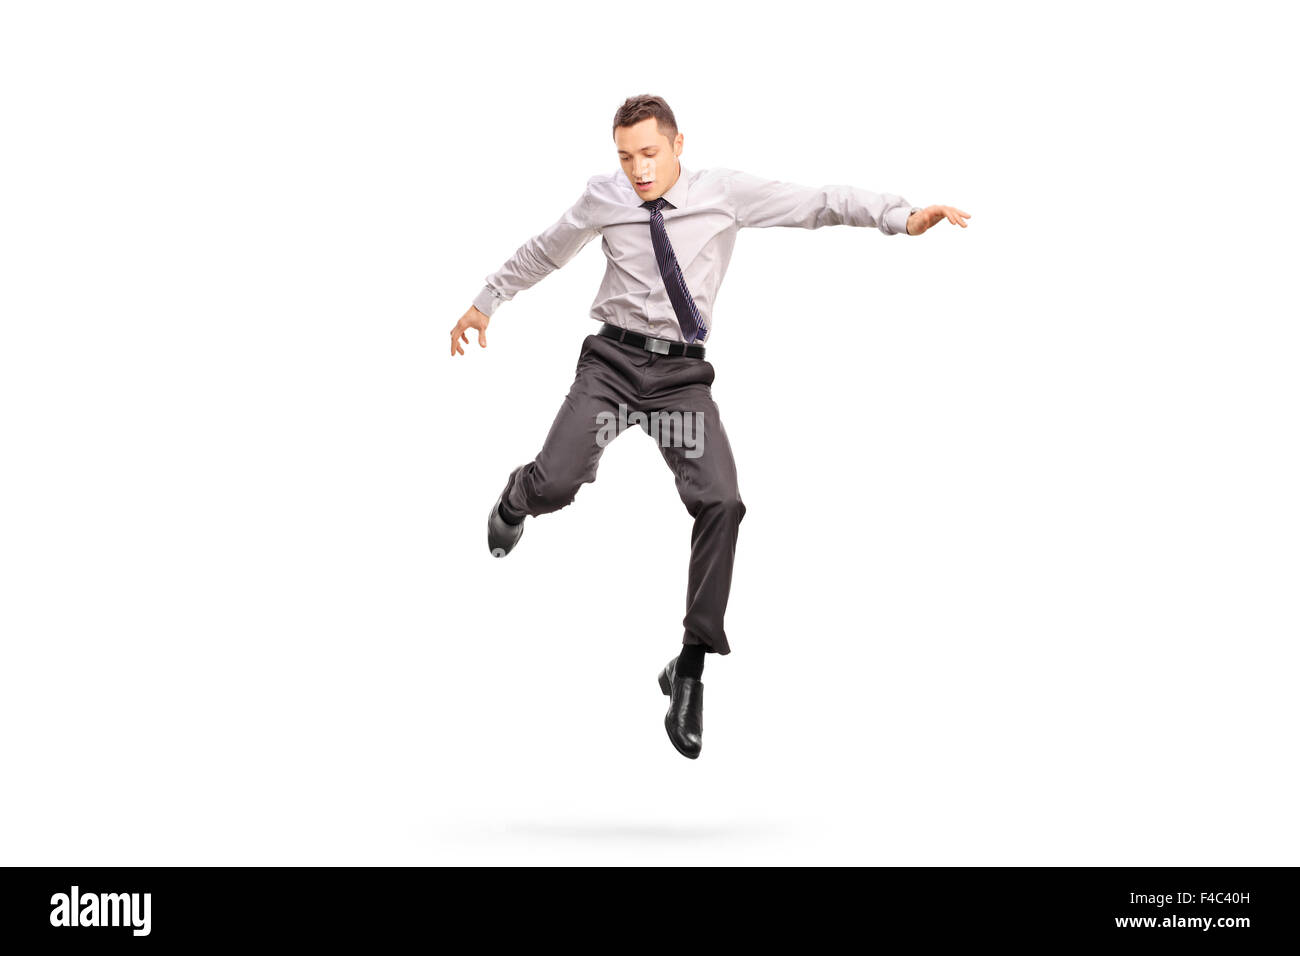 Full length portrait of a young businessman jumping in the air and looking down isolated on white background - Stock Image